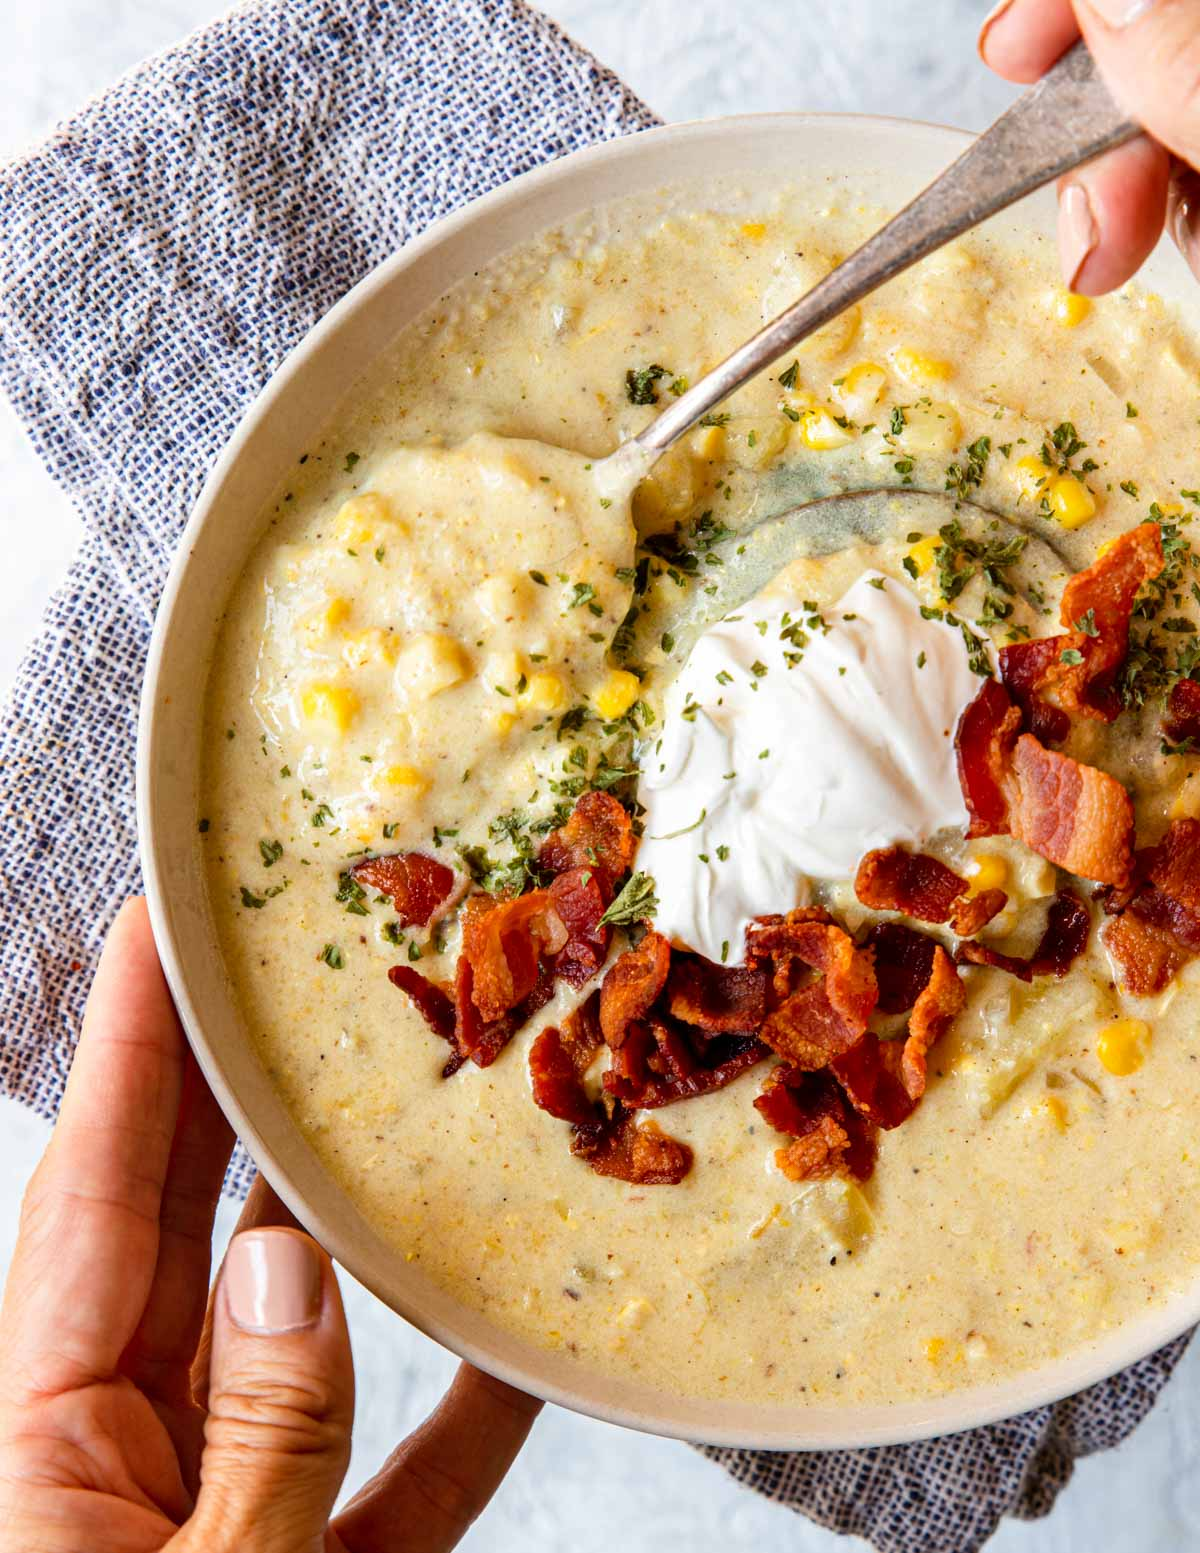 eating a bowl of chowder with a spoon, topped with sour cream and bacon